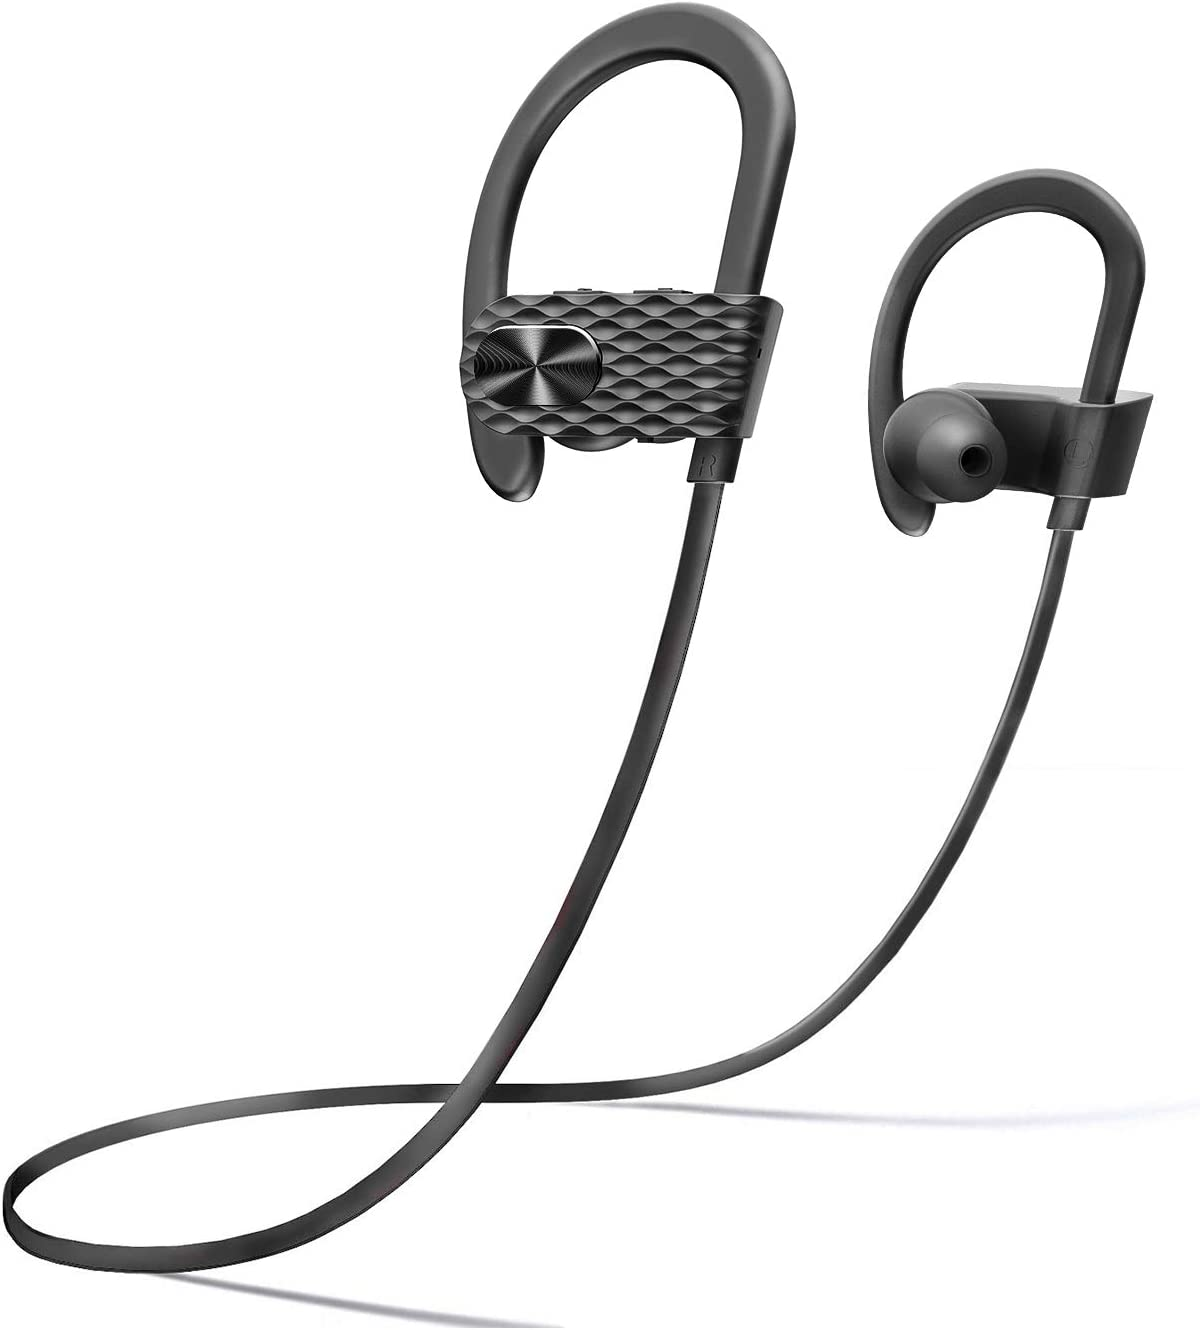 APEKX Bluetooth Earbuds, Sport Wireless Headphones, in-Ear Earphones for Running Gym Sweatproof Stereo Headset